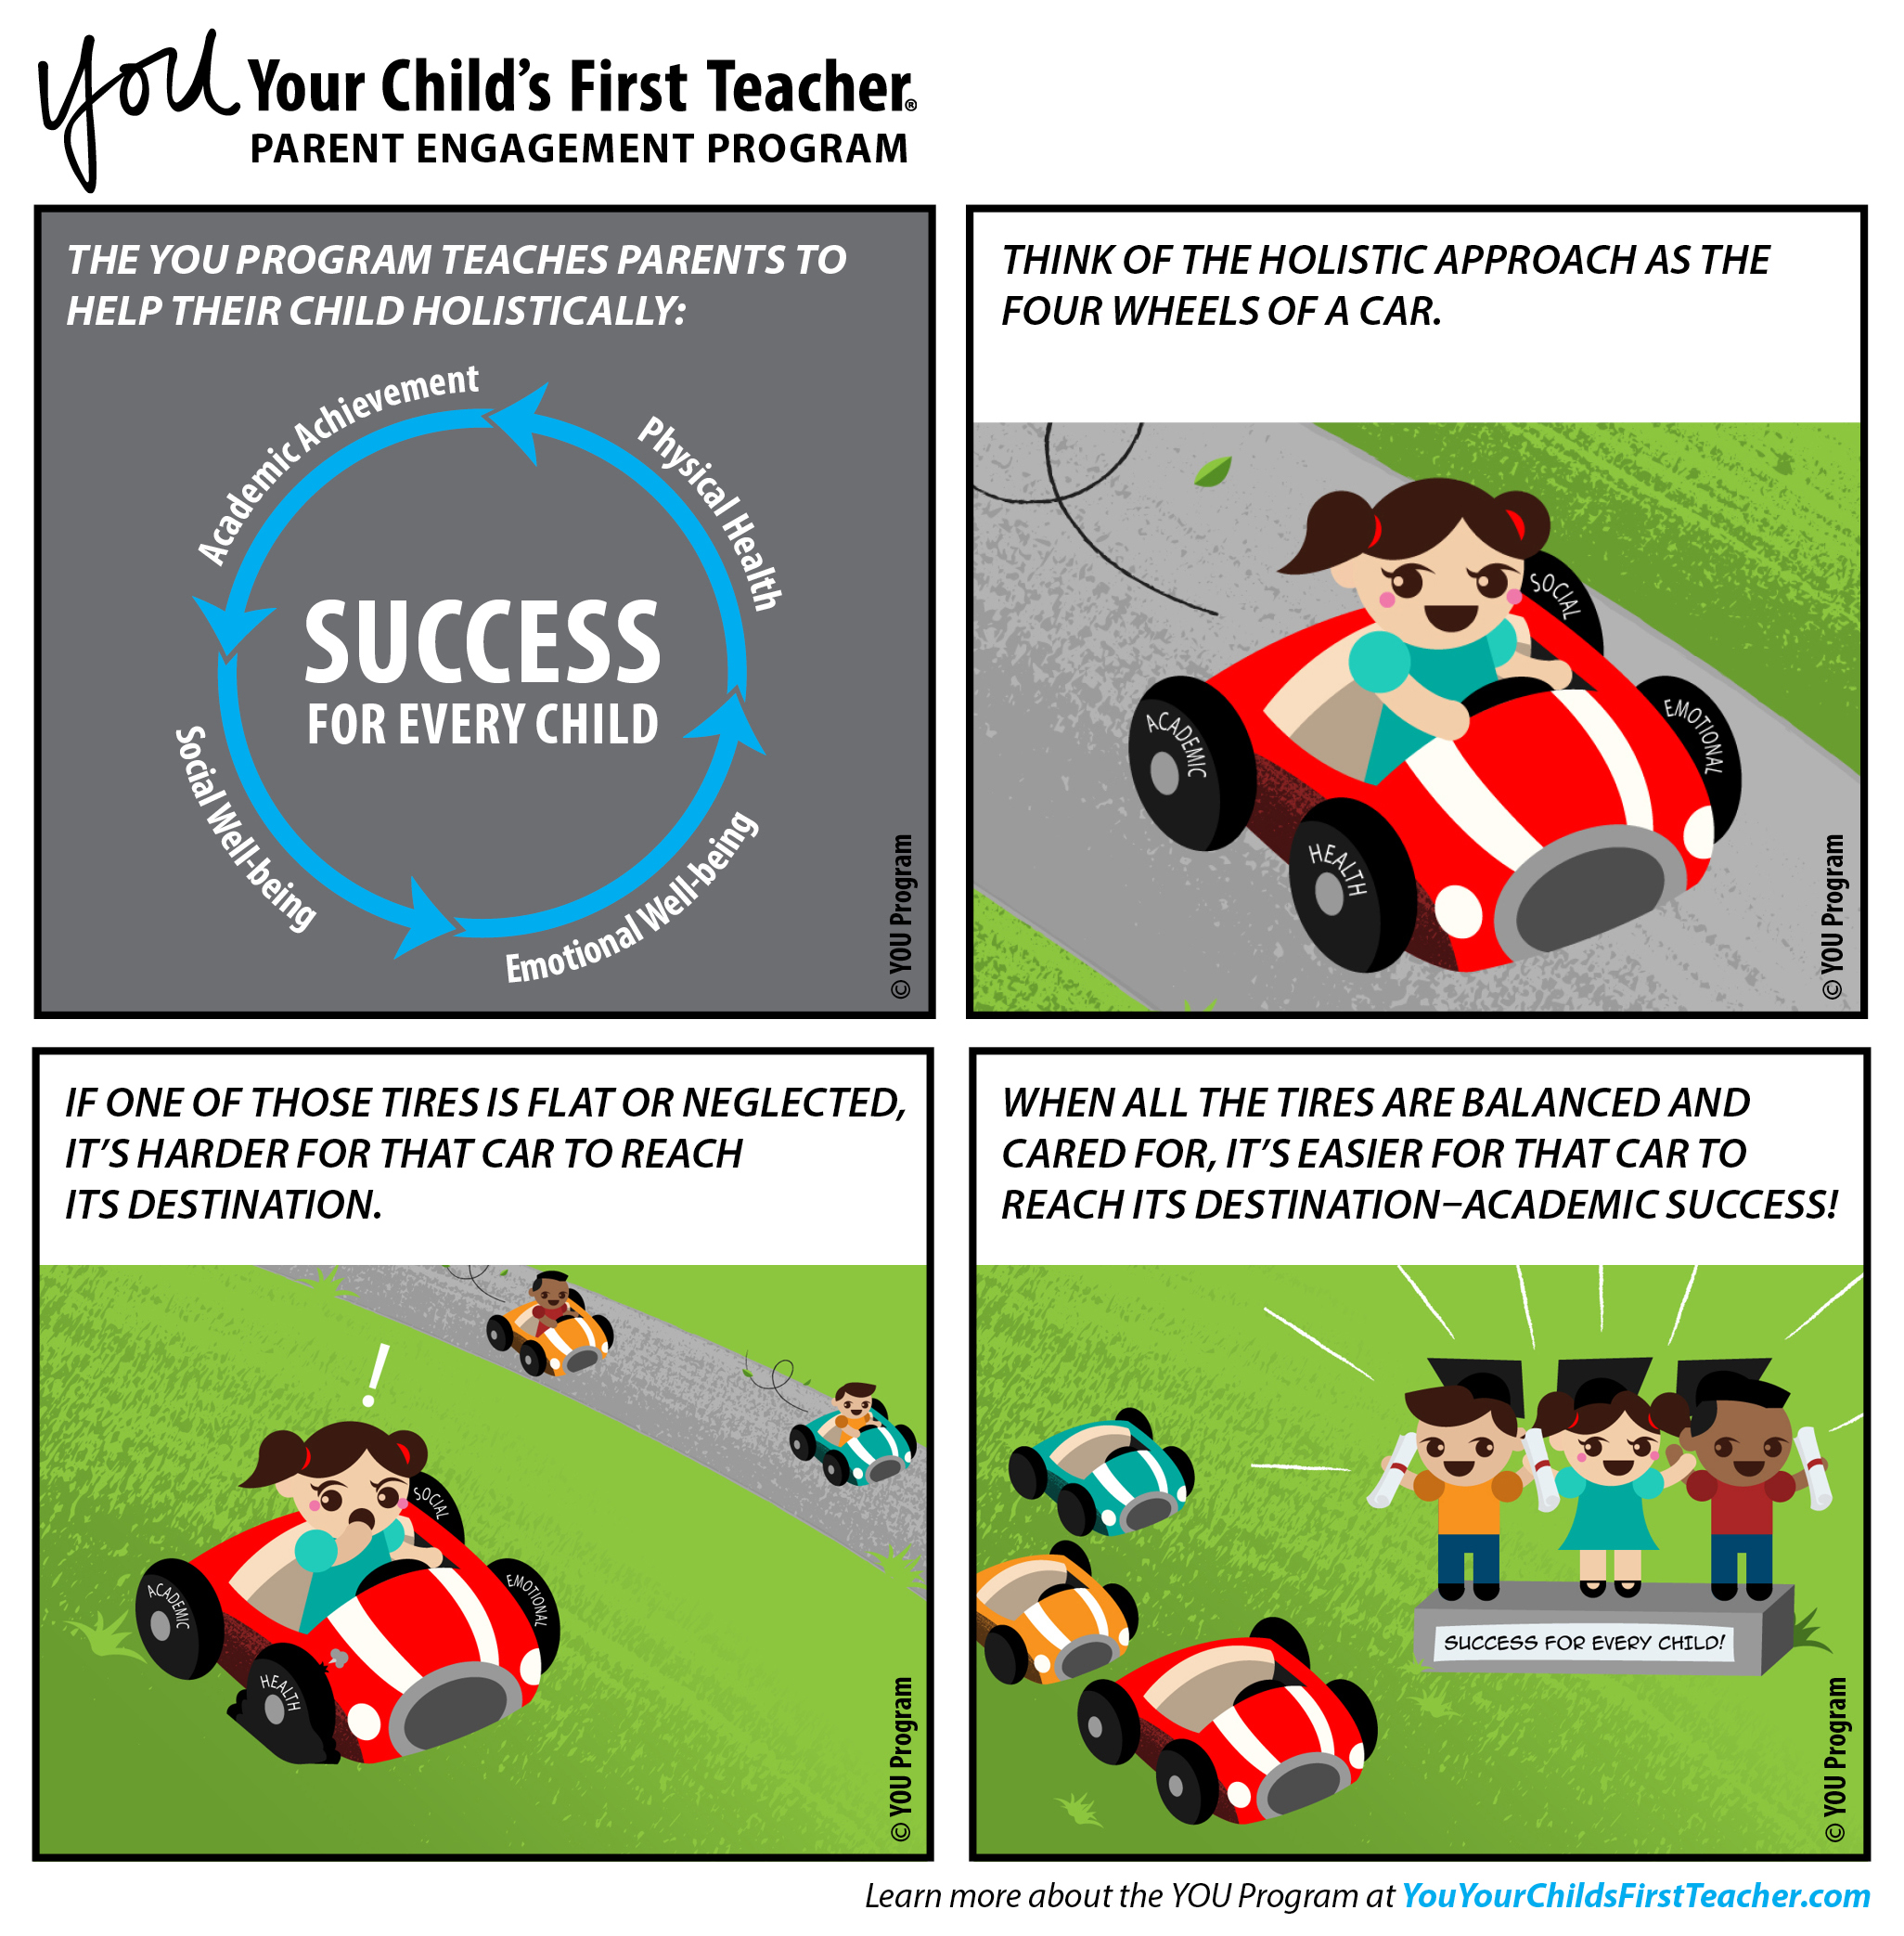 The comic strip image shows the success wheel, then a girl in a car. One of the tires goes flat, and the girl can't finish the race. Each tire represents one of the four core needs for child success. If one need isn't met, the child won't succeed.